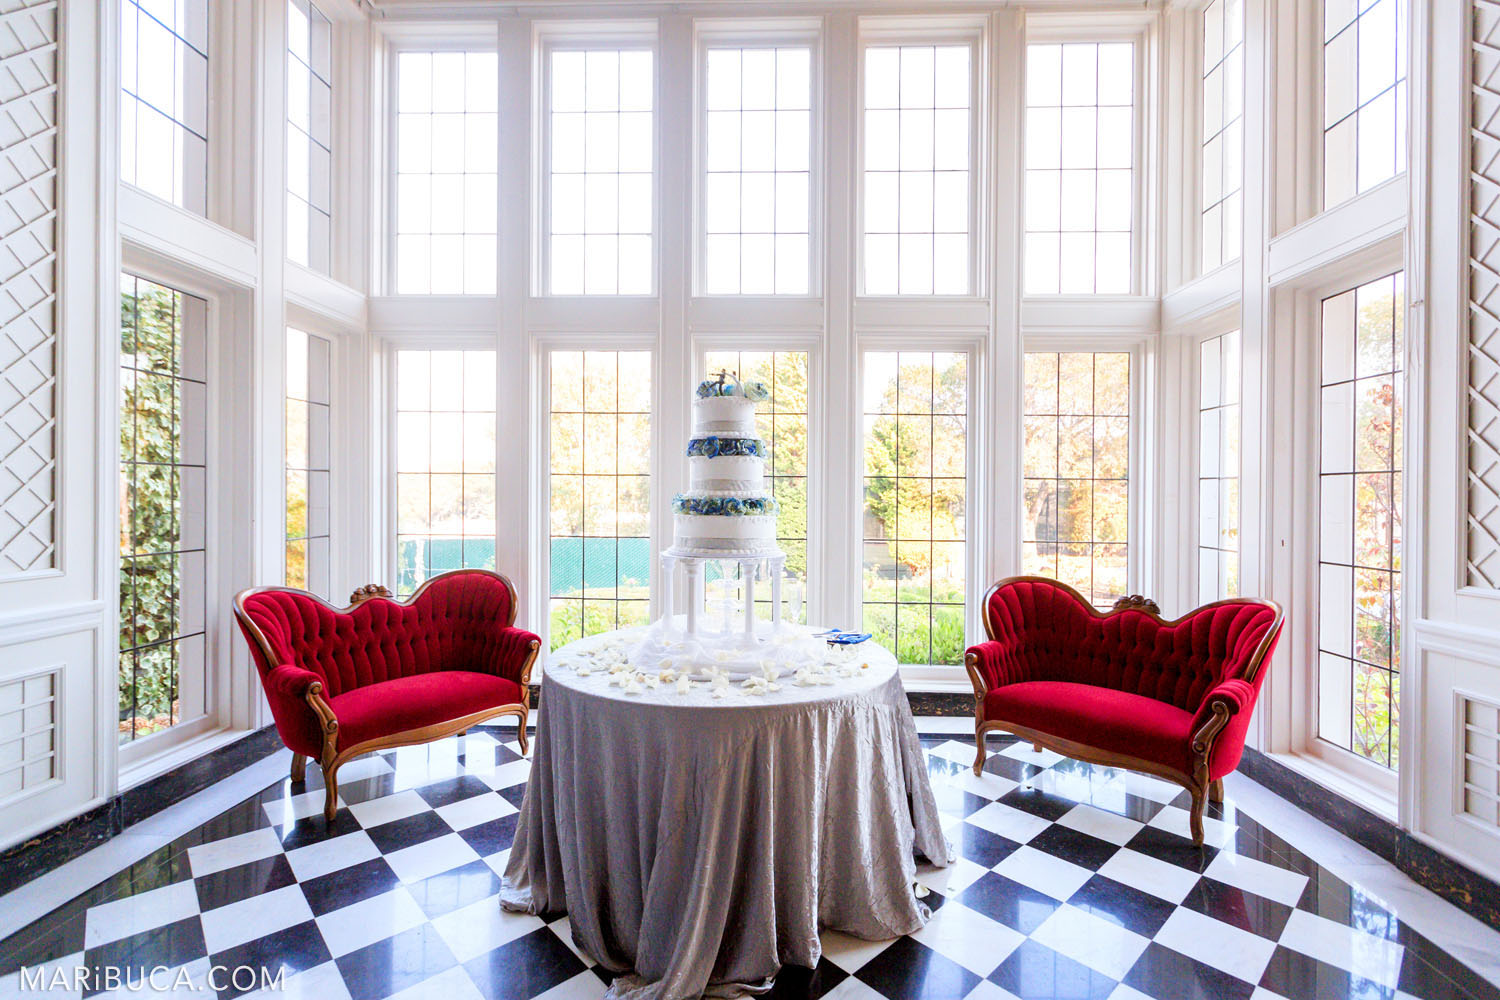 Wedding decorations in the middle of the white room are two red sofas on opposite sides, in the center is a round table with a silver tablecloth and a three-story white with blue cake in the Morning Room, Kohl Mansion, Burlingame